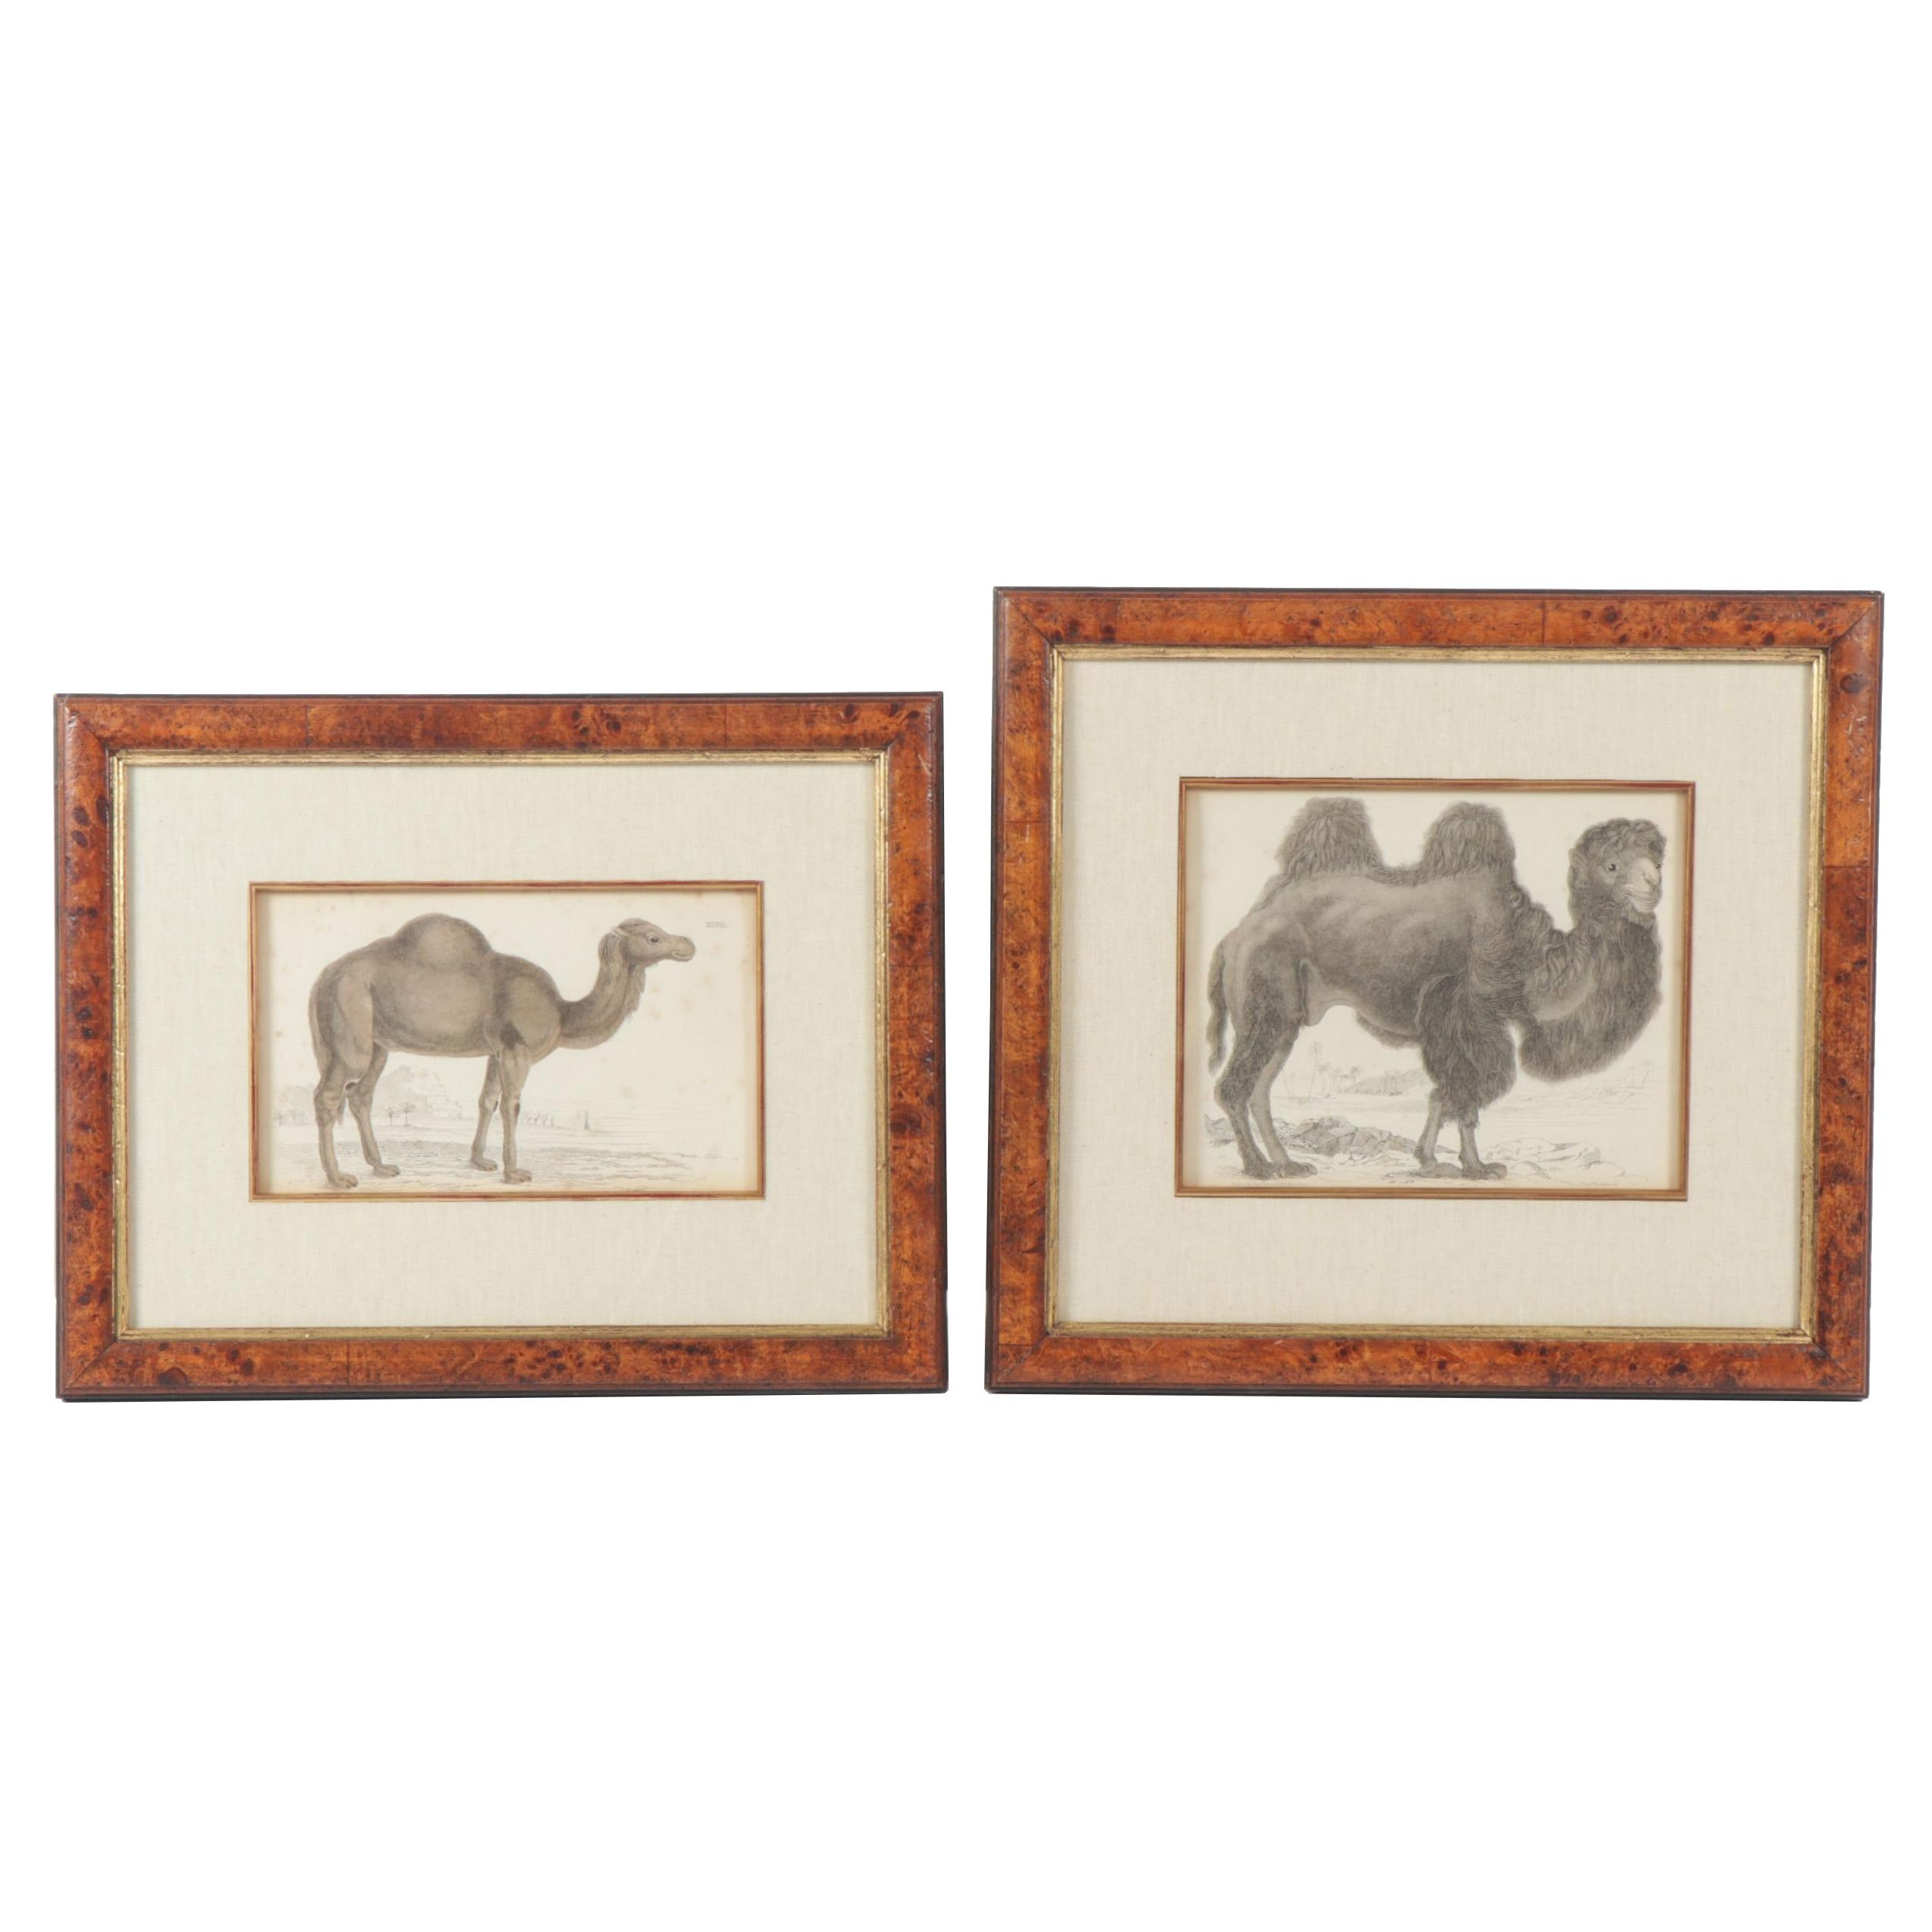 Hand-Colored Engravings of Camels after Thomas Brown and Nicolas Maréchal